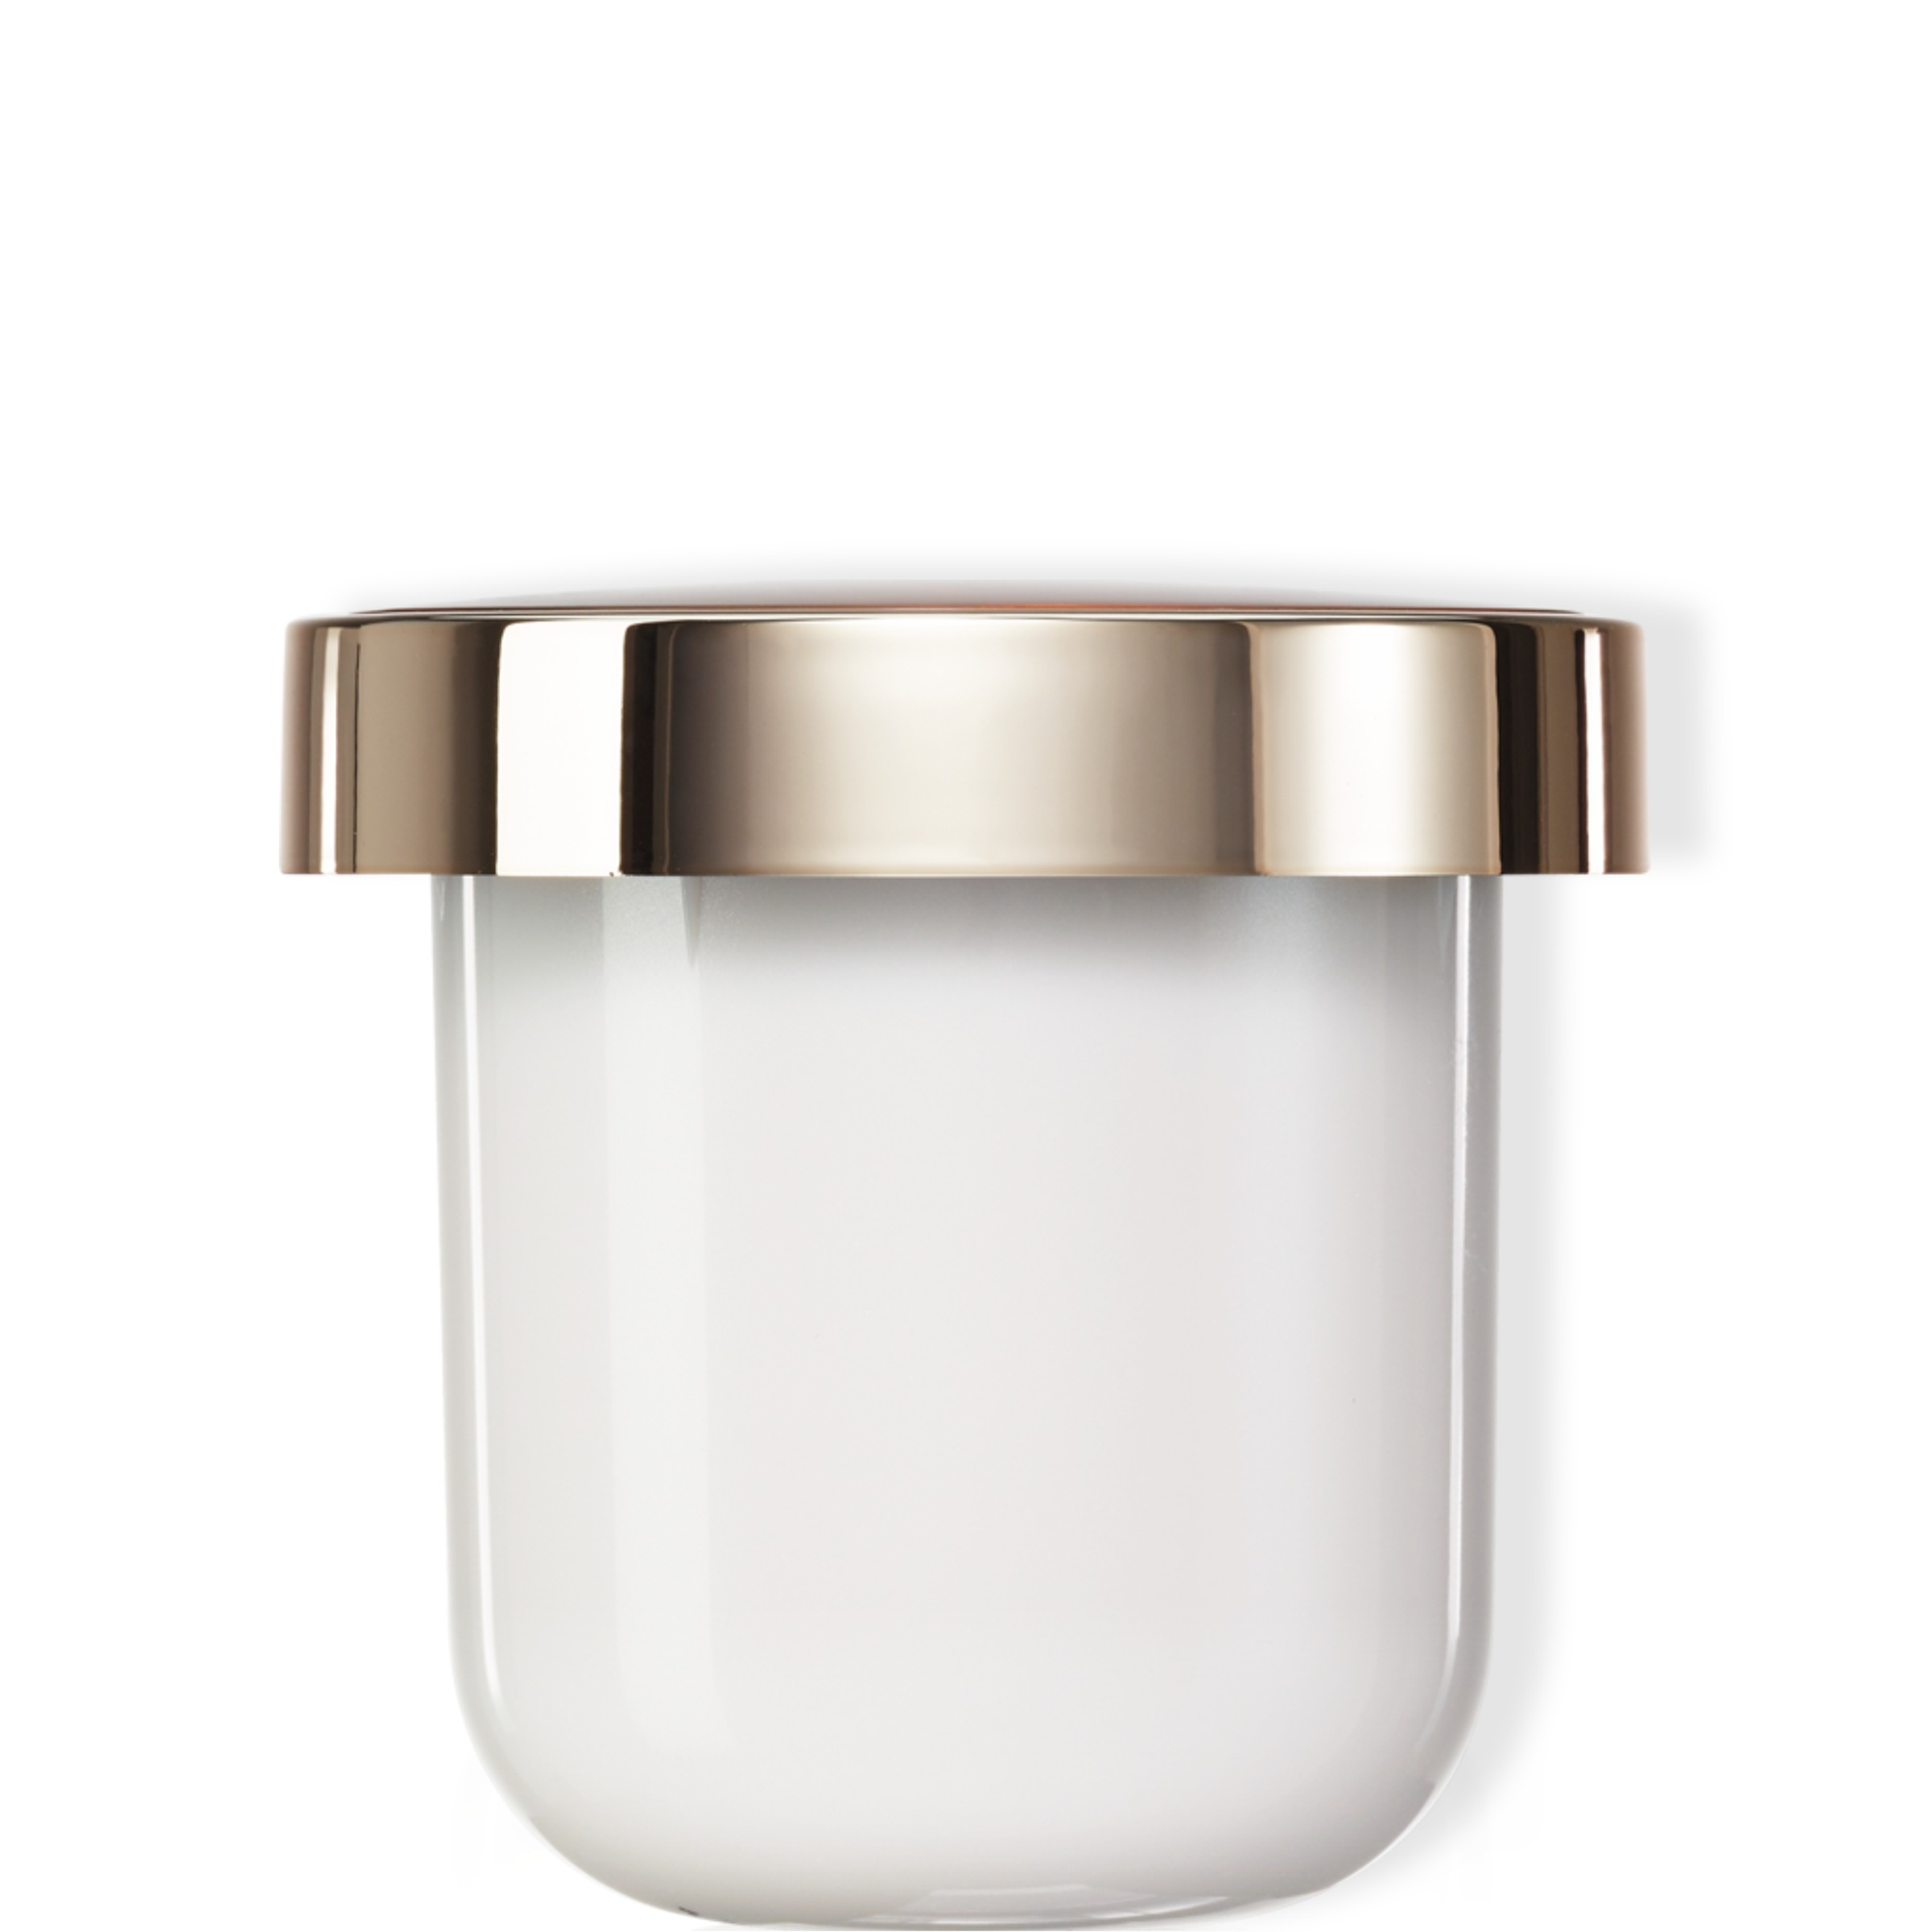 Prestige Eye Cream Refill